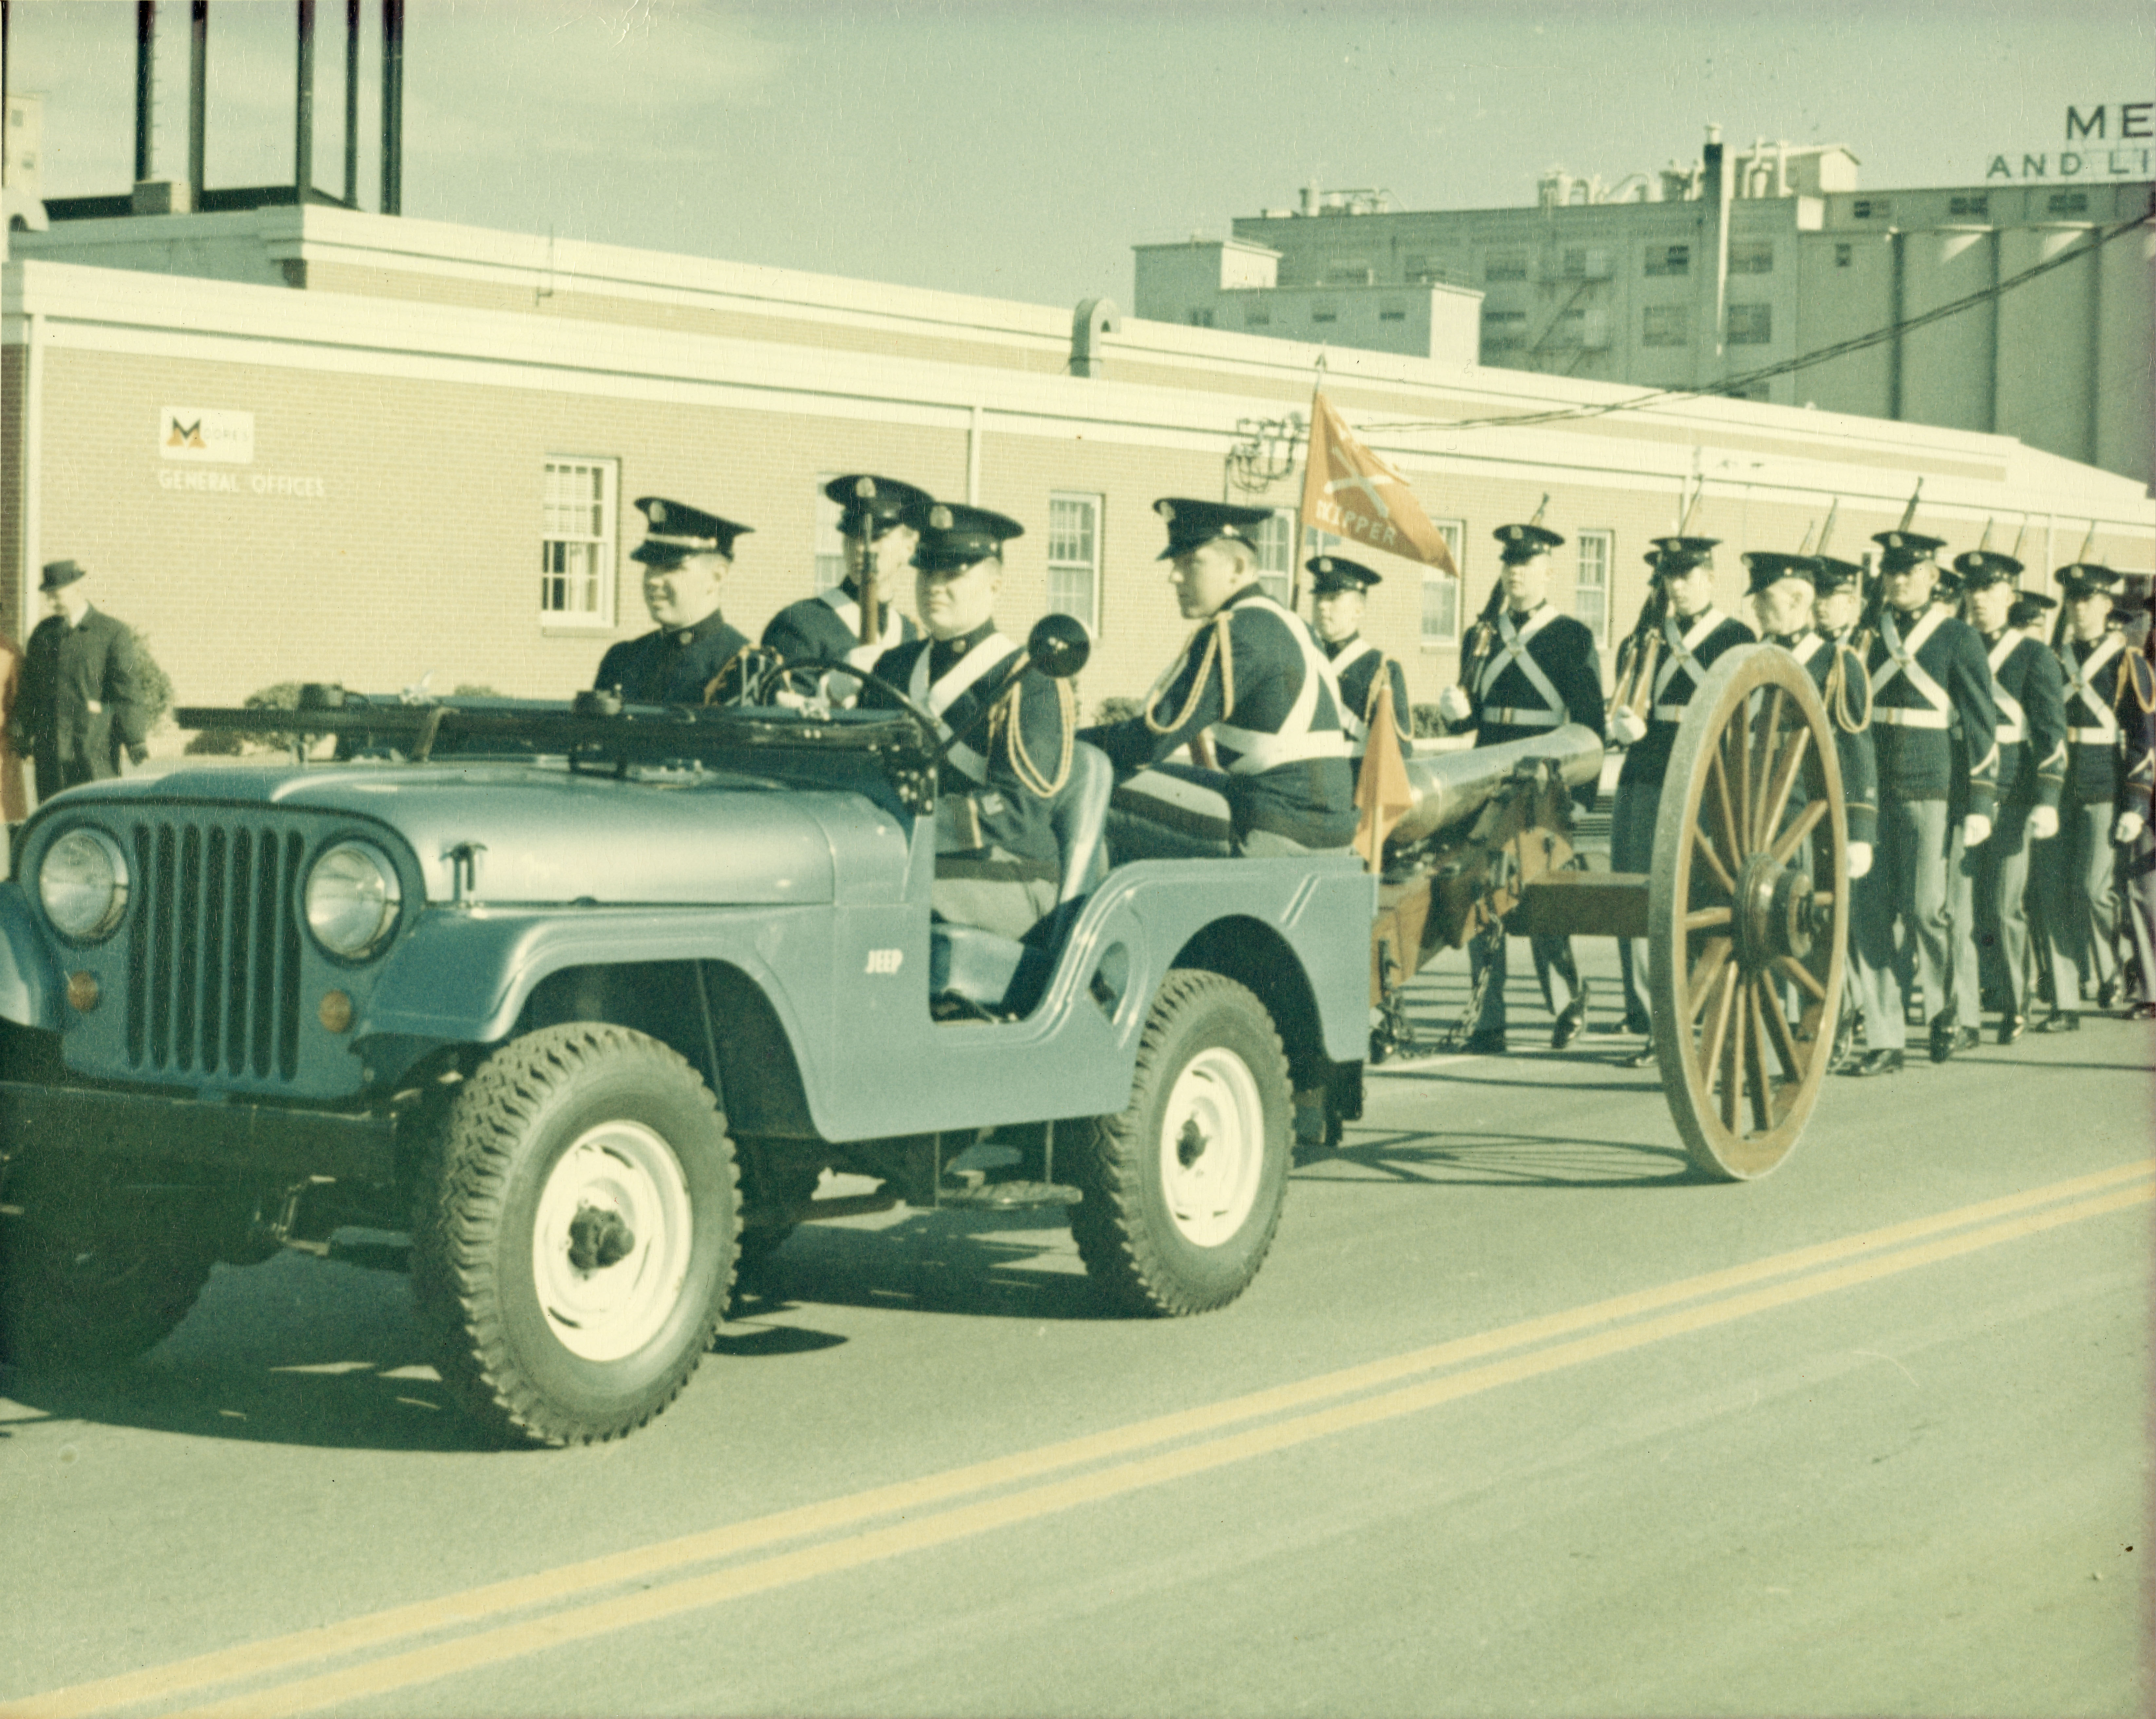 Cadets parade the Skipper cannon through the streets of Roanoke, circa Thanksgiving 1964